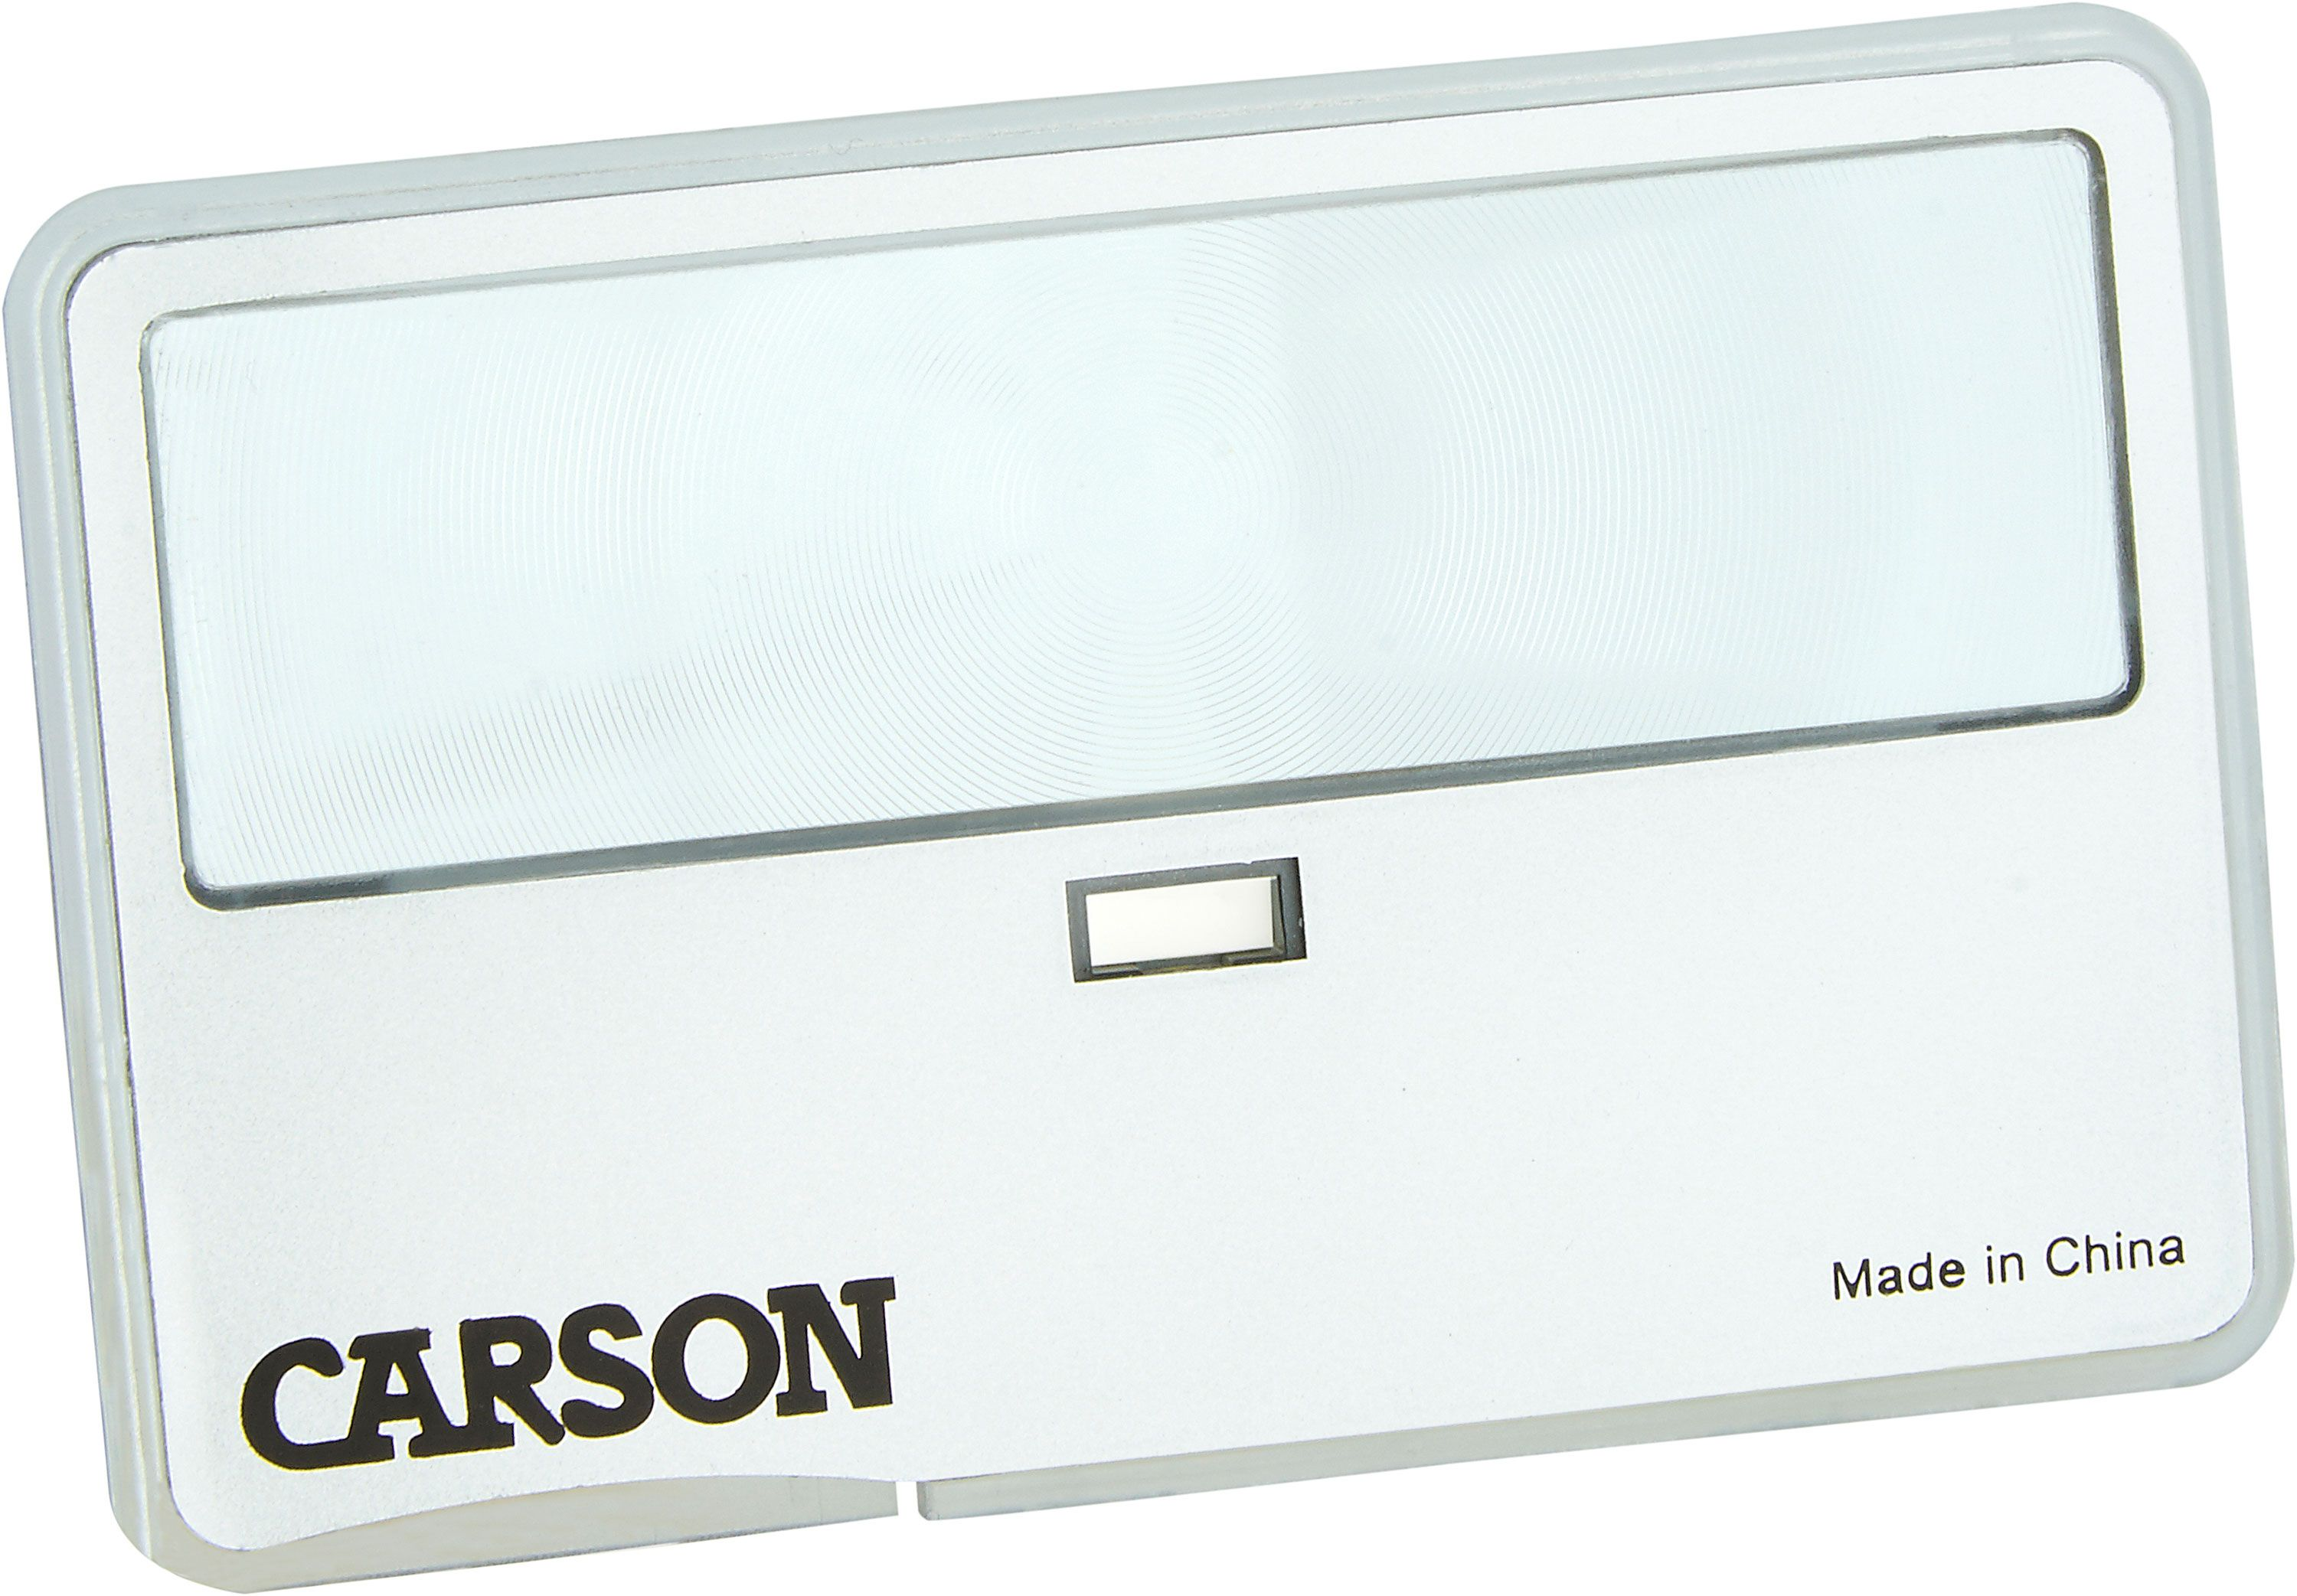 Carson Optical MC-99 MagniCard, Credit Card Sized Magnifier with LED Light